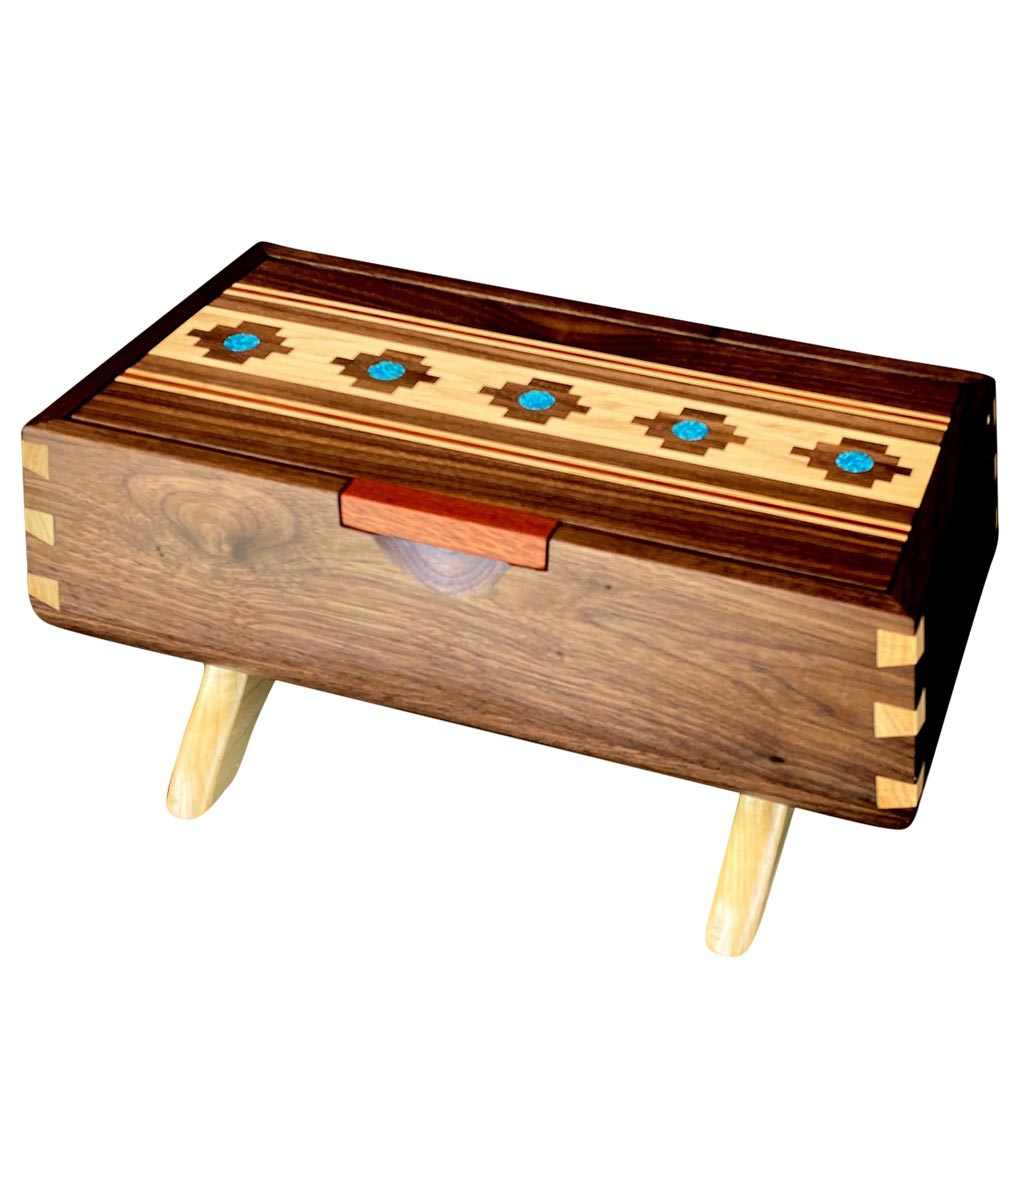 wood marquetry keepsake box with turquoise inlay